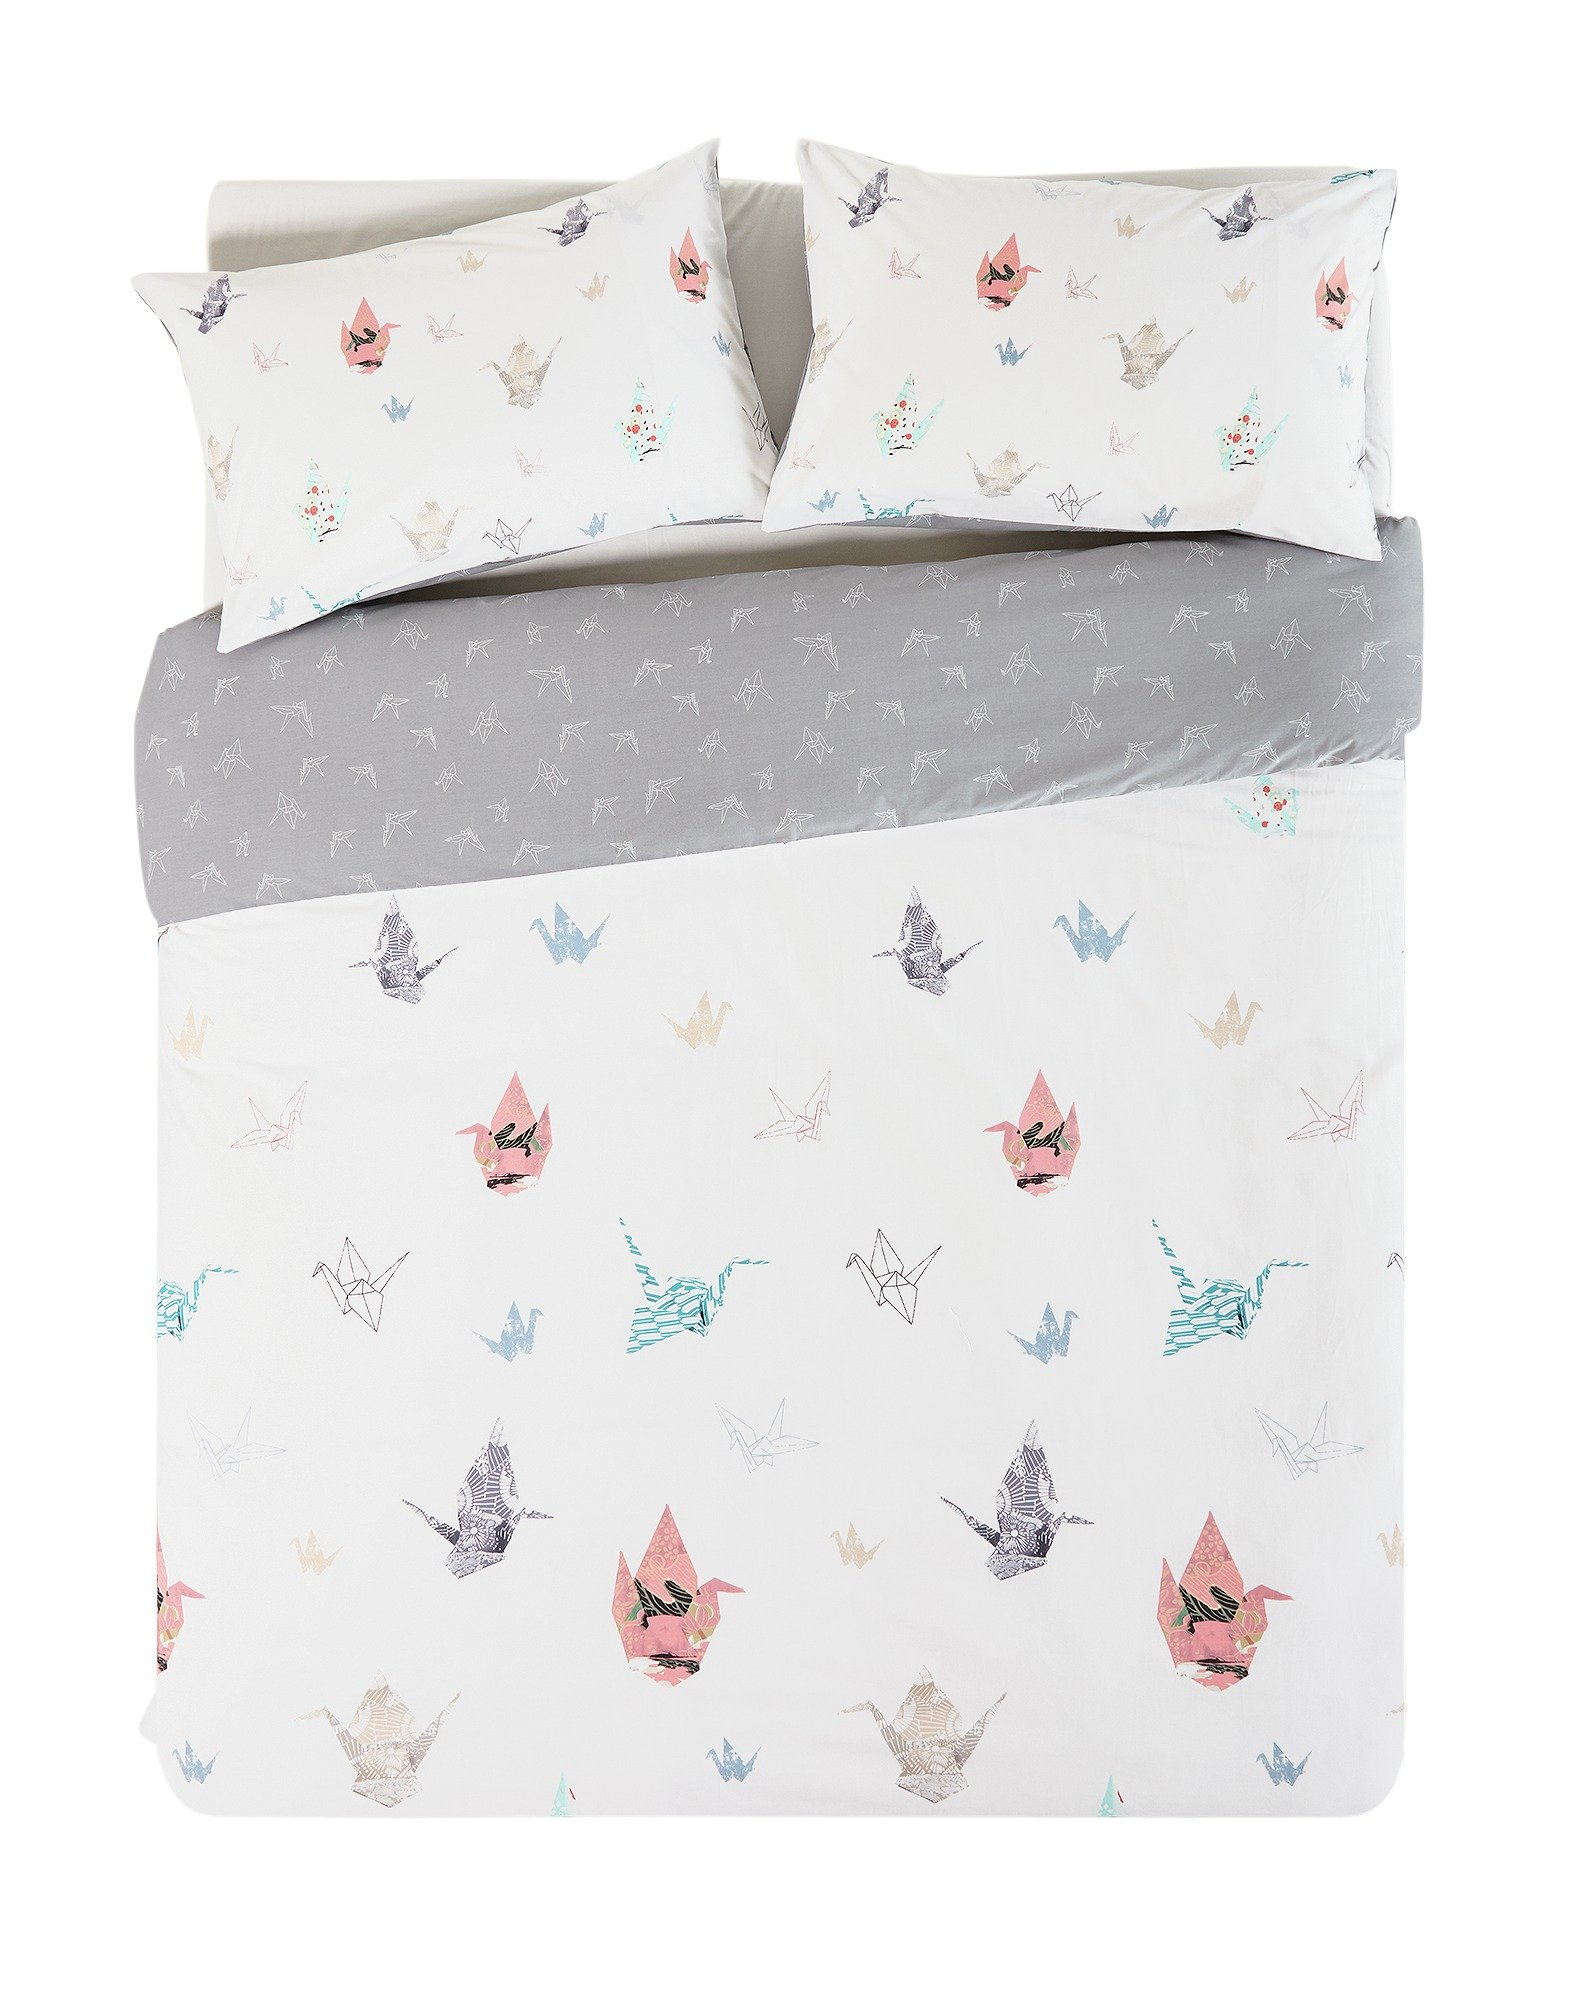 home paper cranes bedding set  double